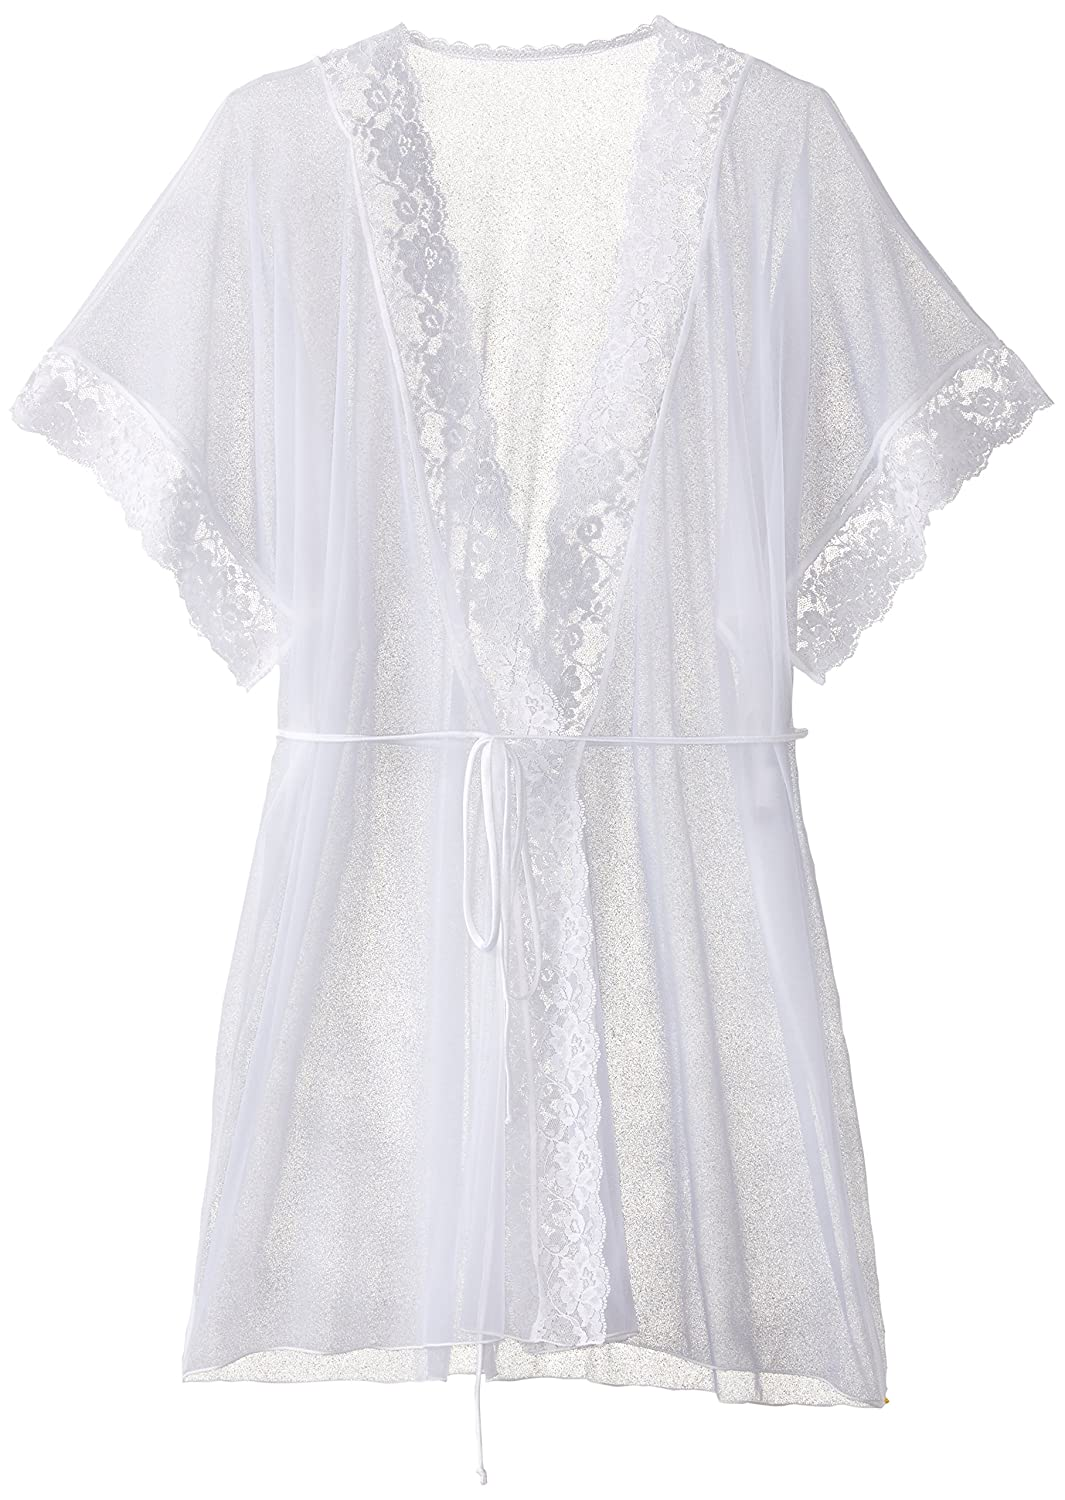 Shirley of Hollywood Women's Sheer Lace Trimmed Robe Black One Size 96046